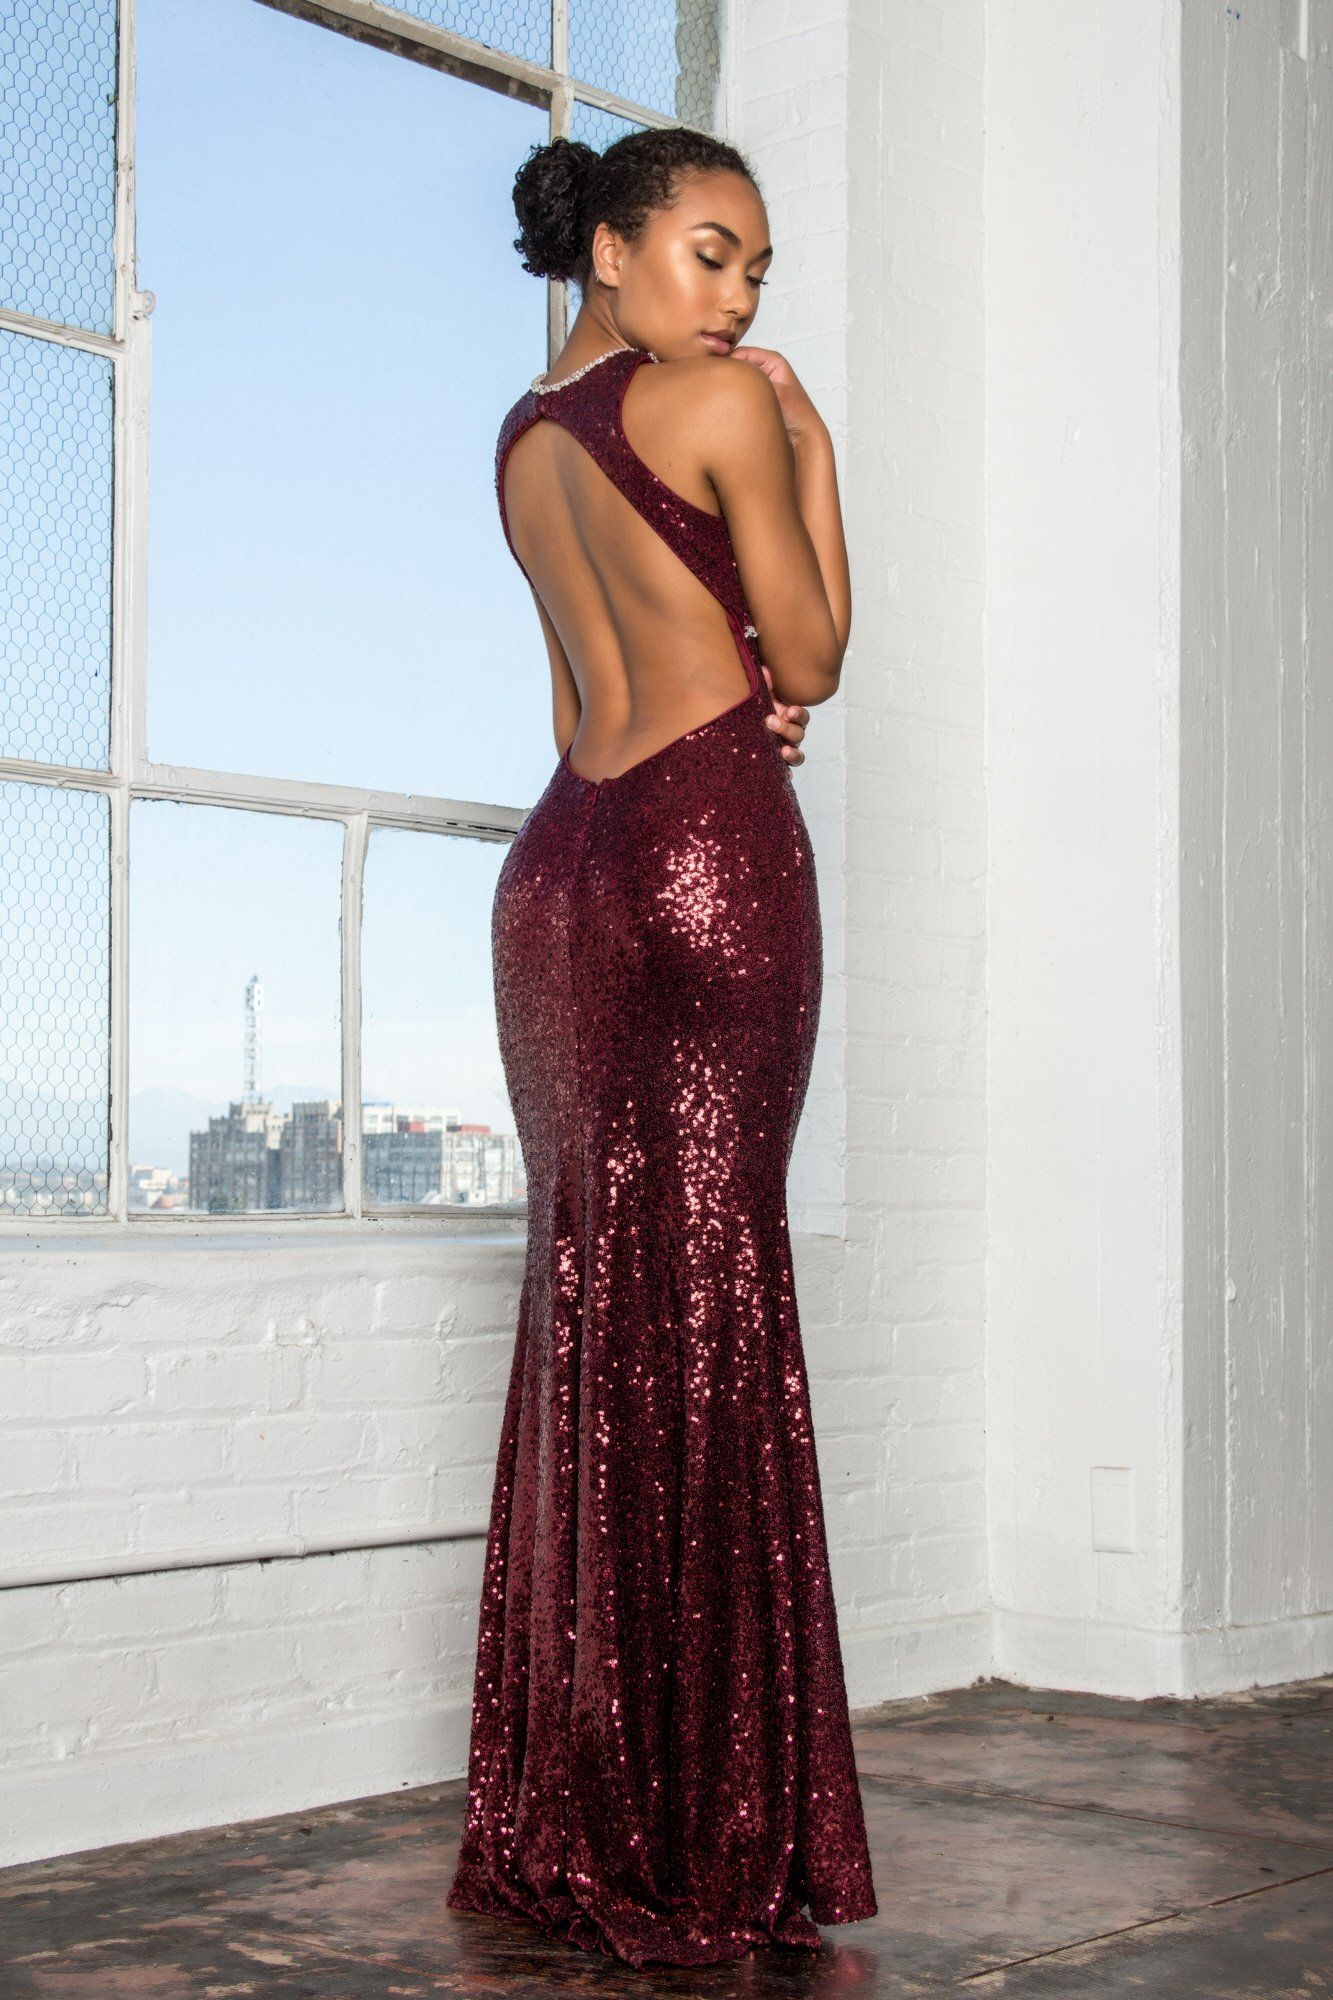 ea9dff22e5a0 ... Sexy Sequin burgundy evening gown Gls 2217-Simply Fab Dress ...